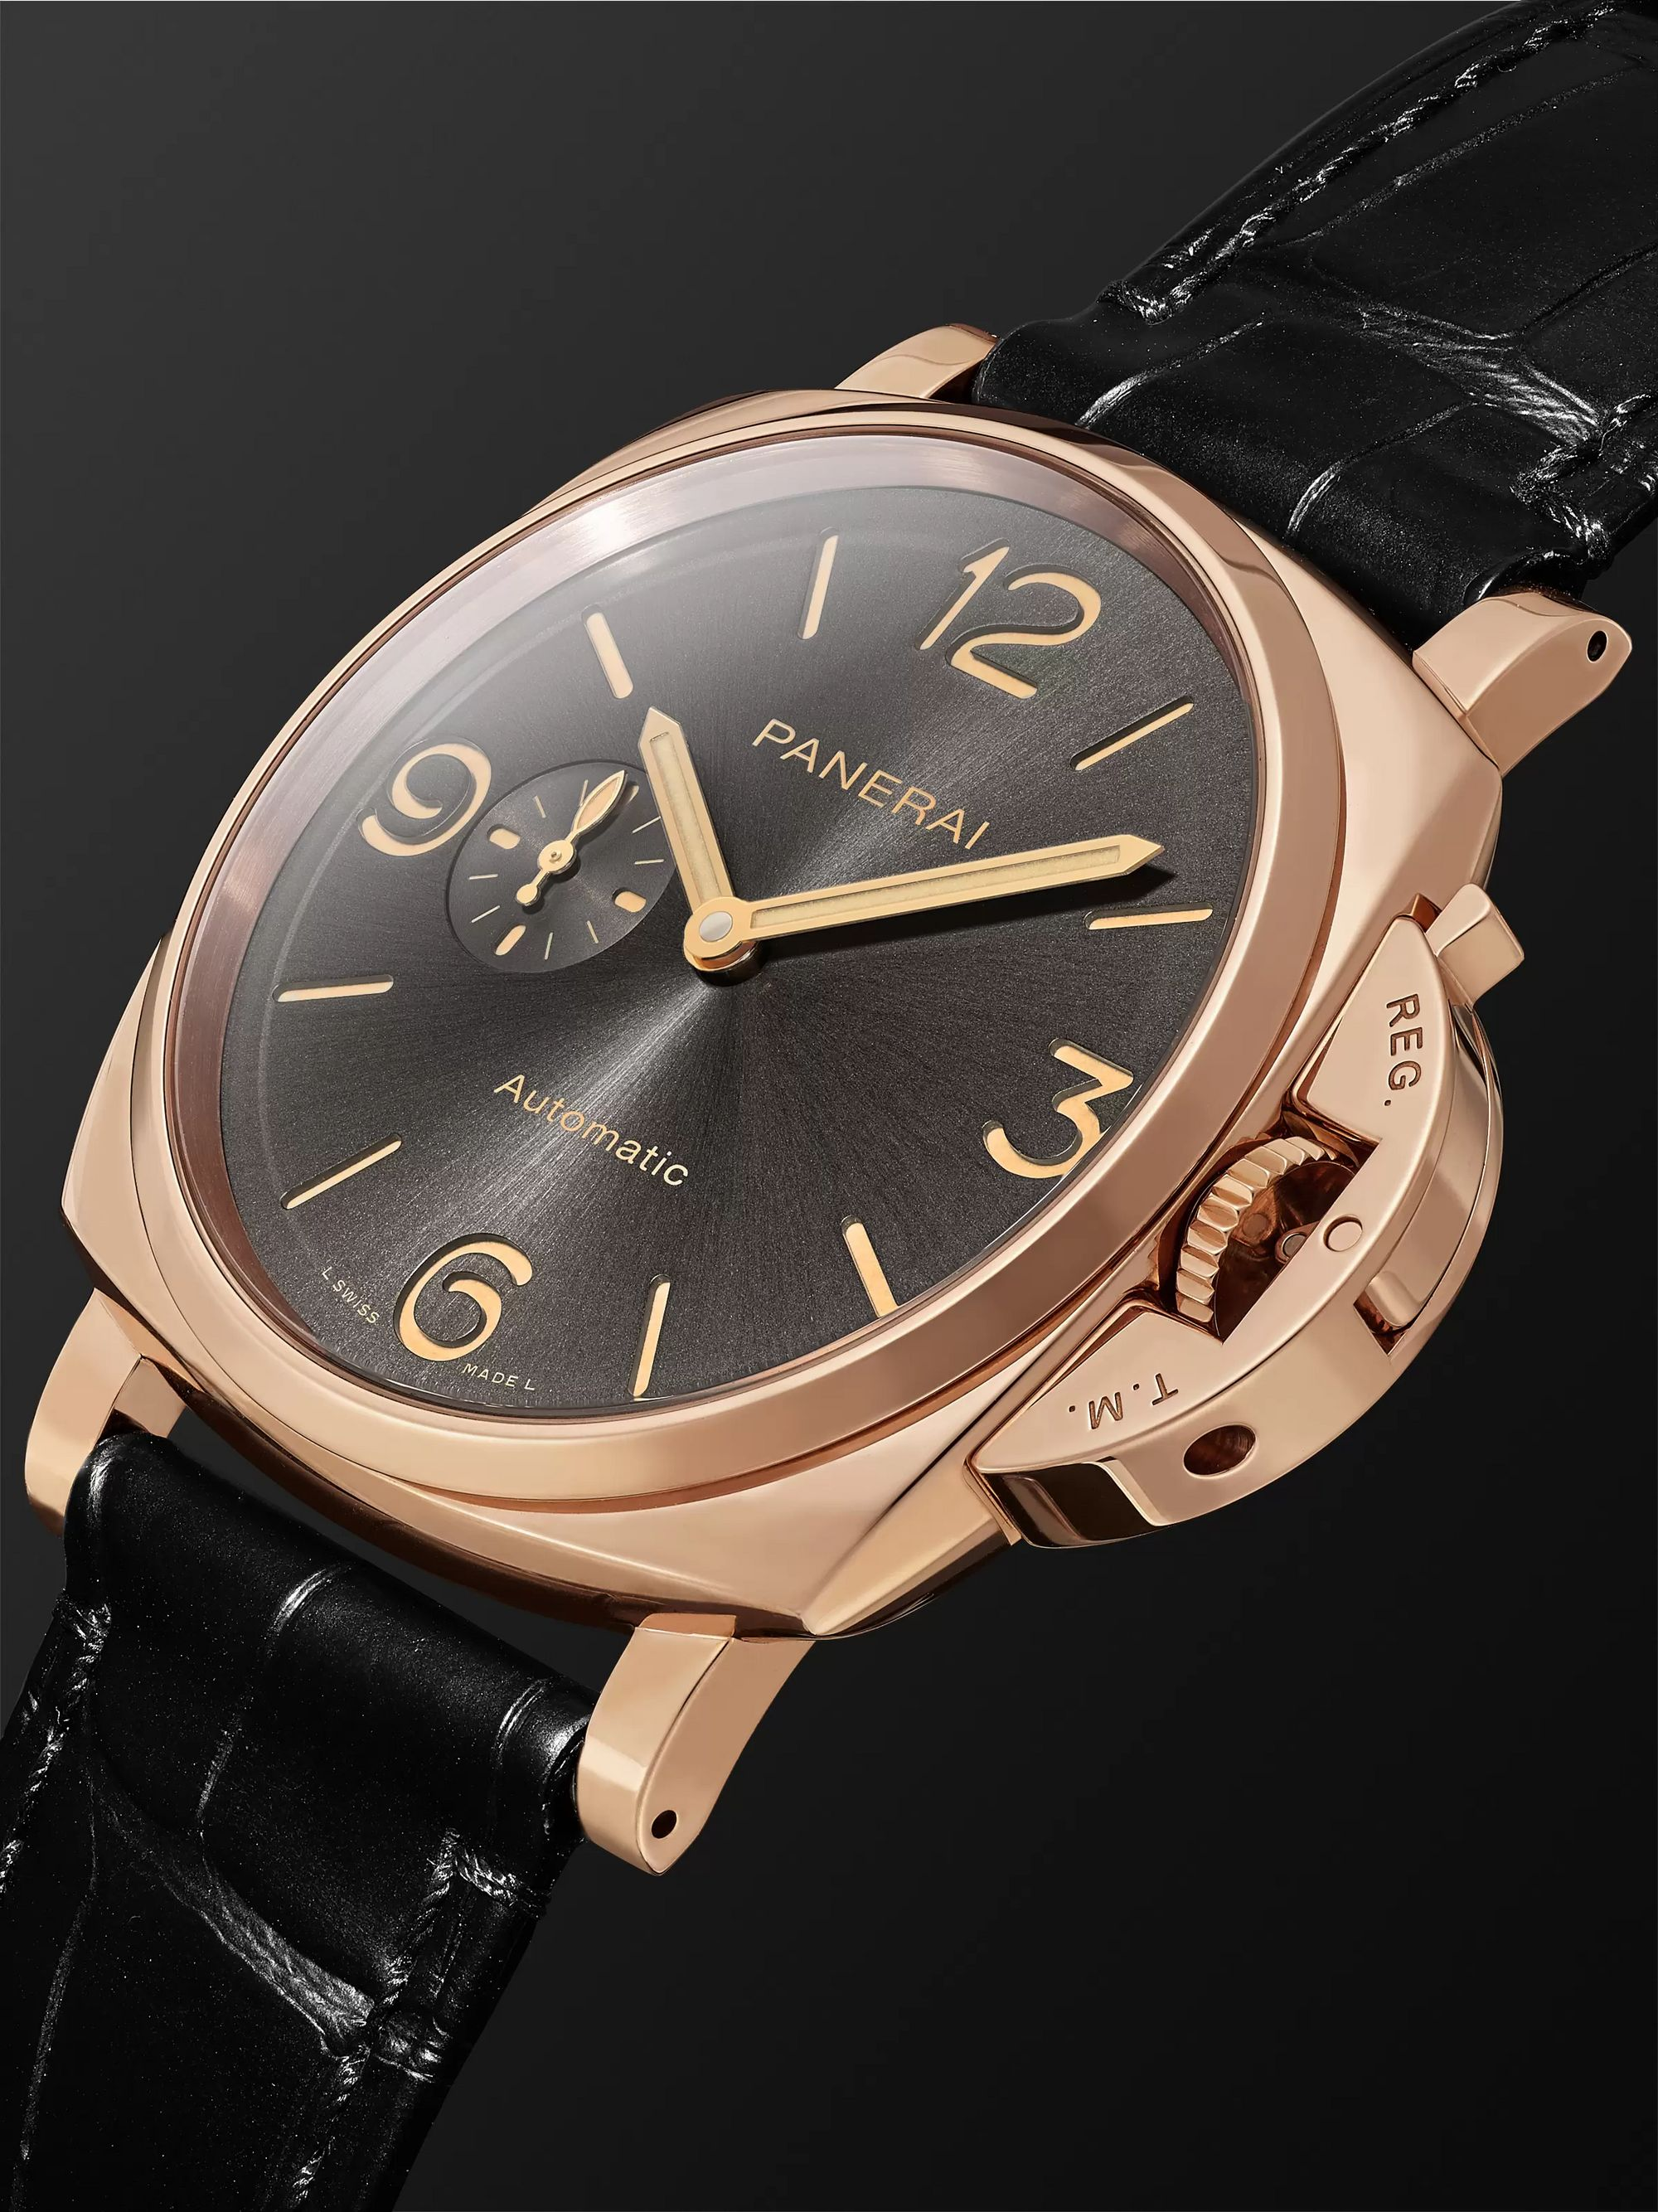 Panerai Luminor Due 3 Days Automatic 45mm Rose Goldtech and Alligator Watch